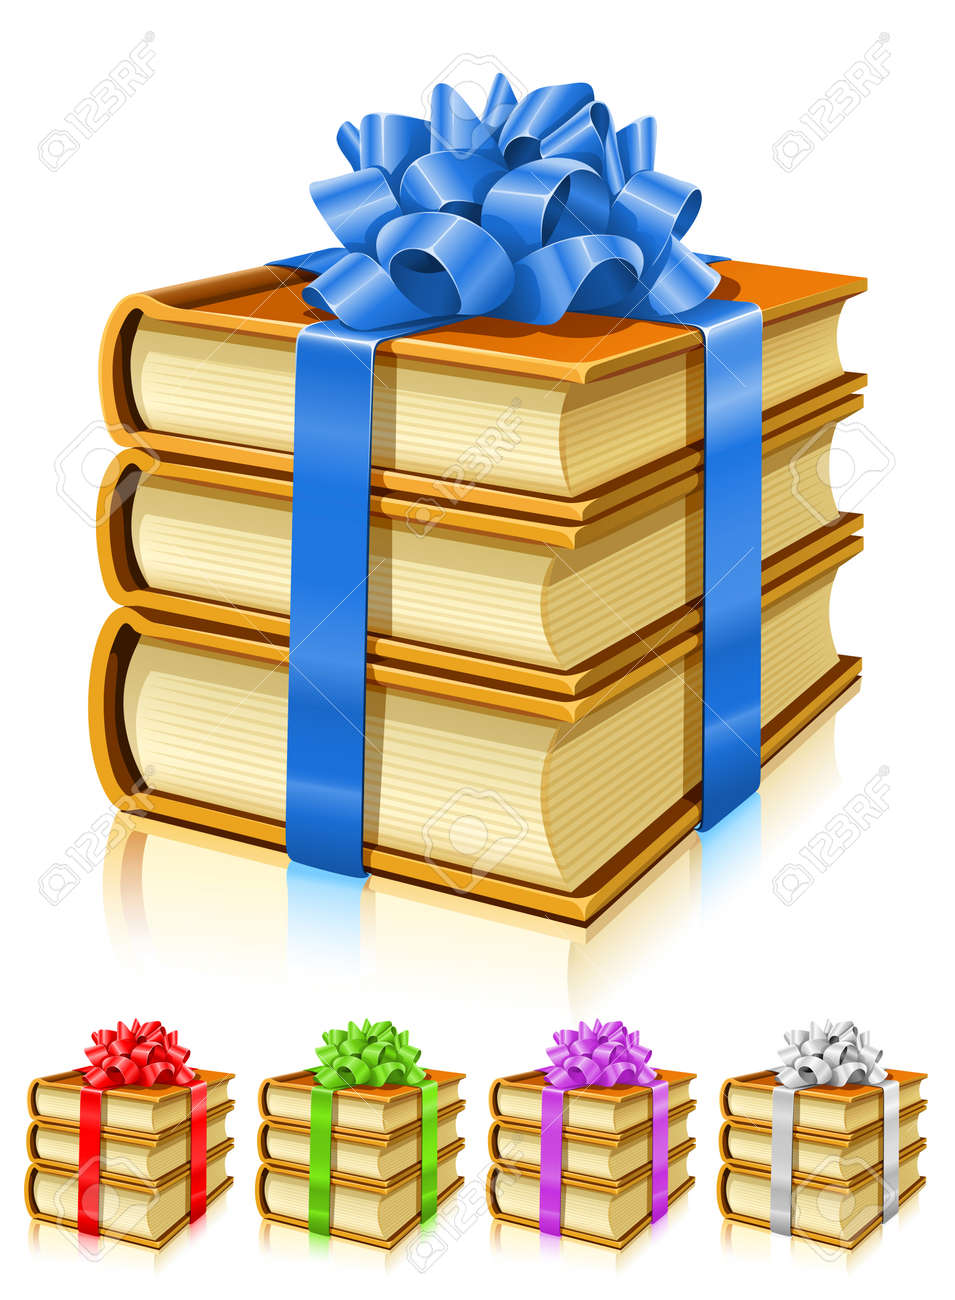 gifts of books with color ribbons and bows - vector illustration Stock Vector - 4287697